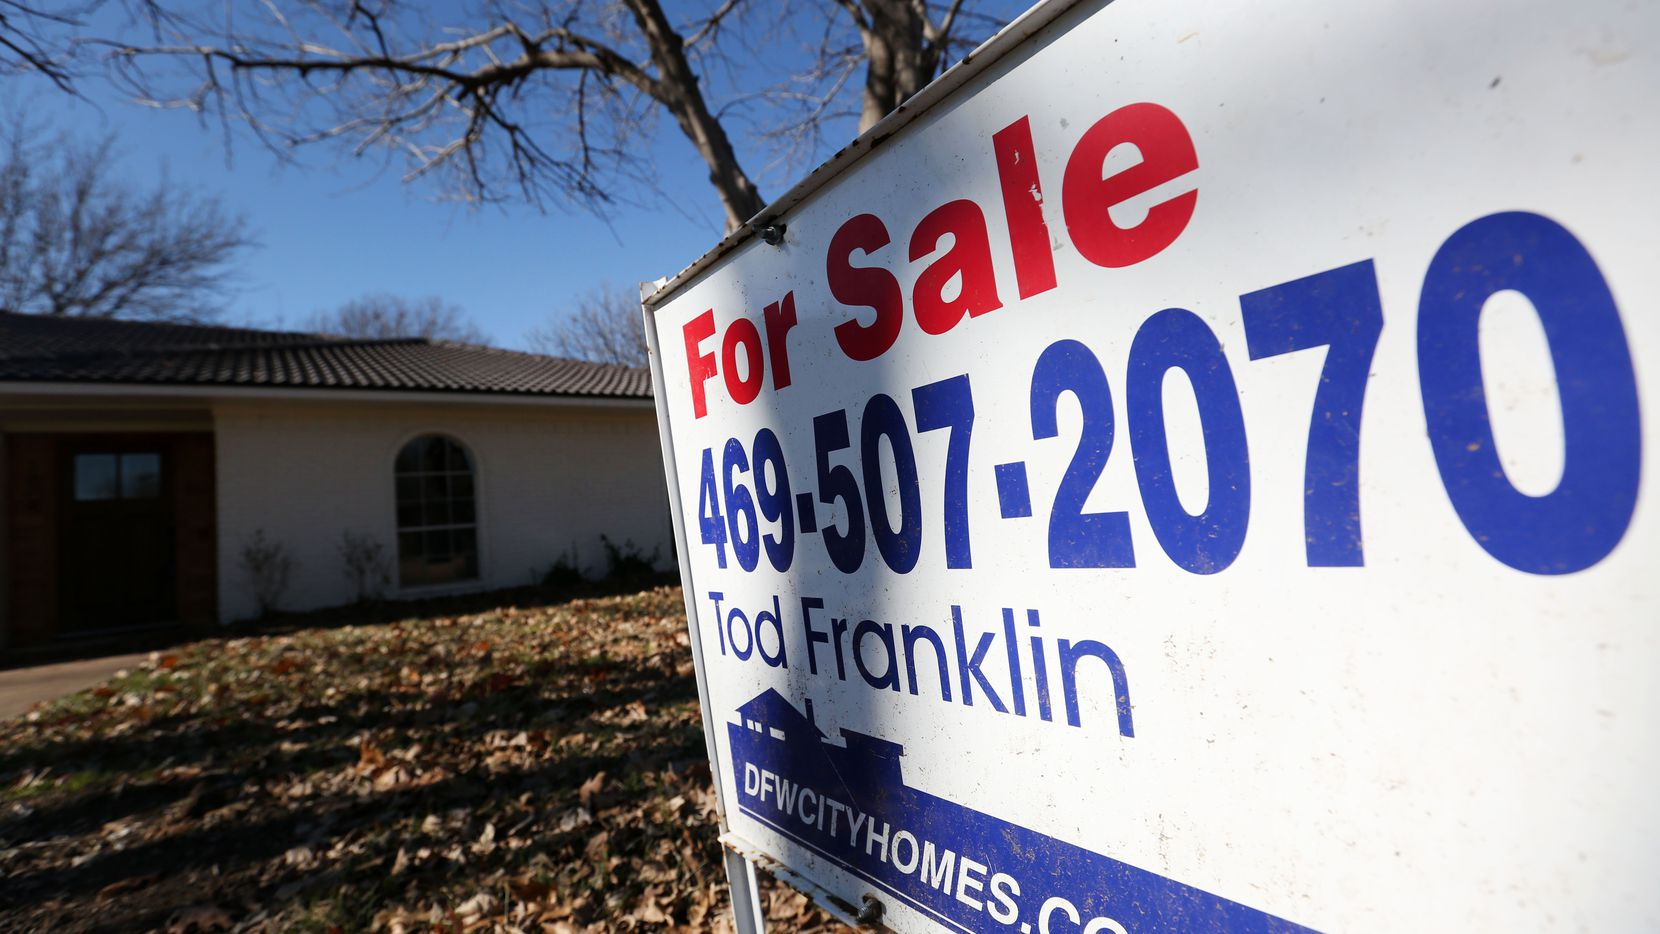 Dallas-area home prices were up only 5.7 percent in the latest Case-Shiller survey.